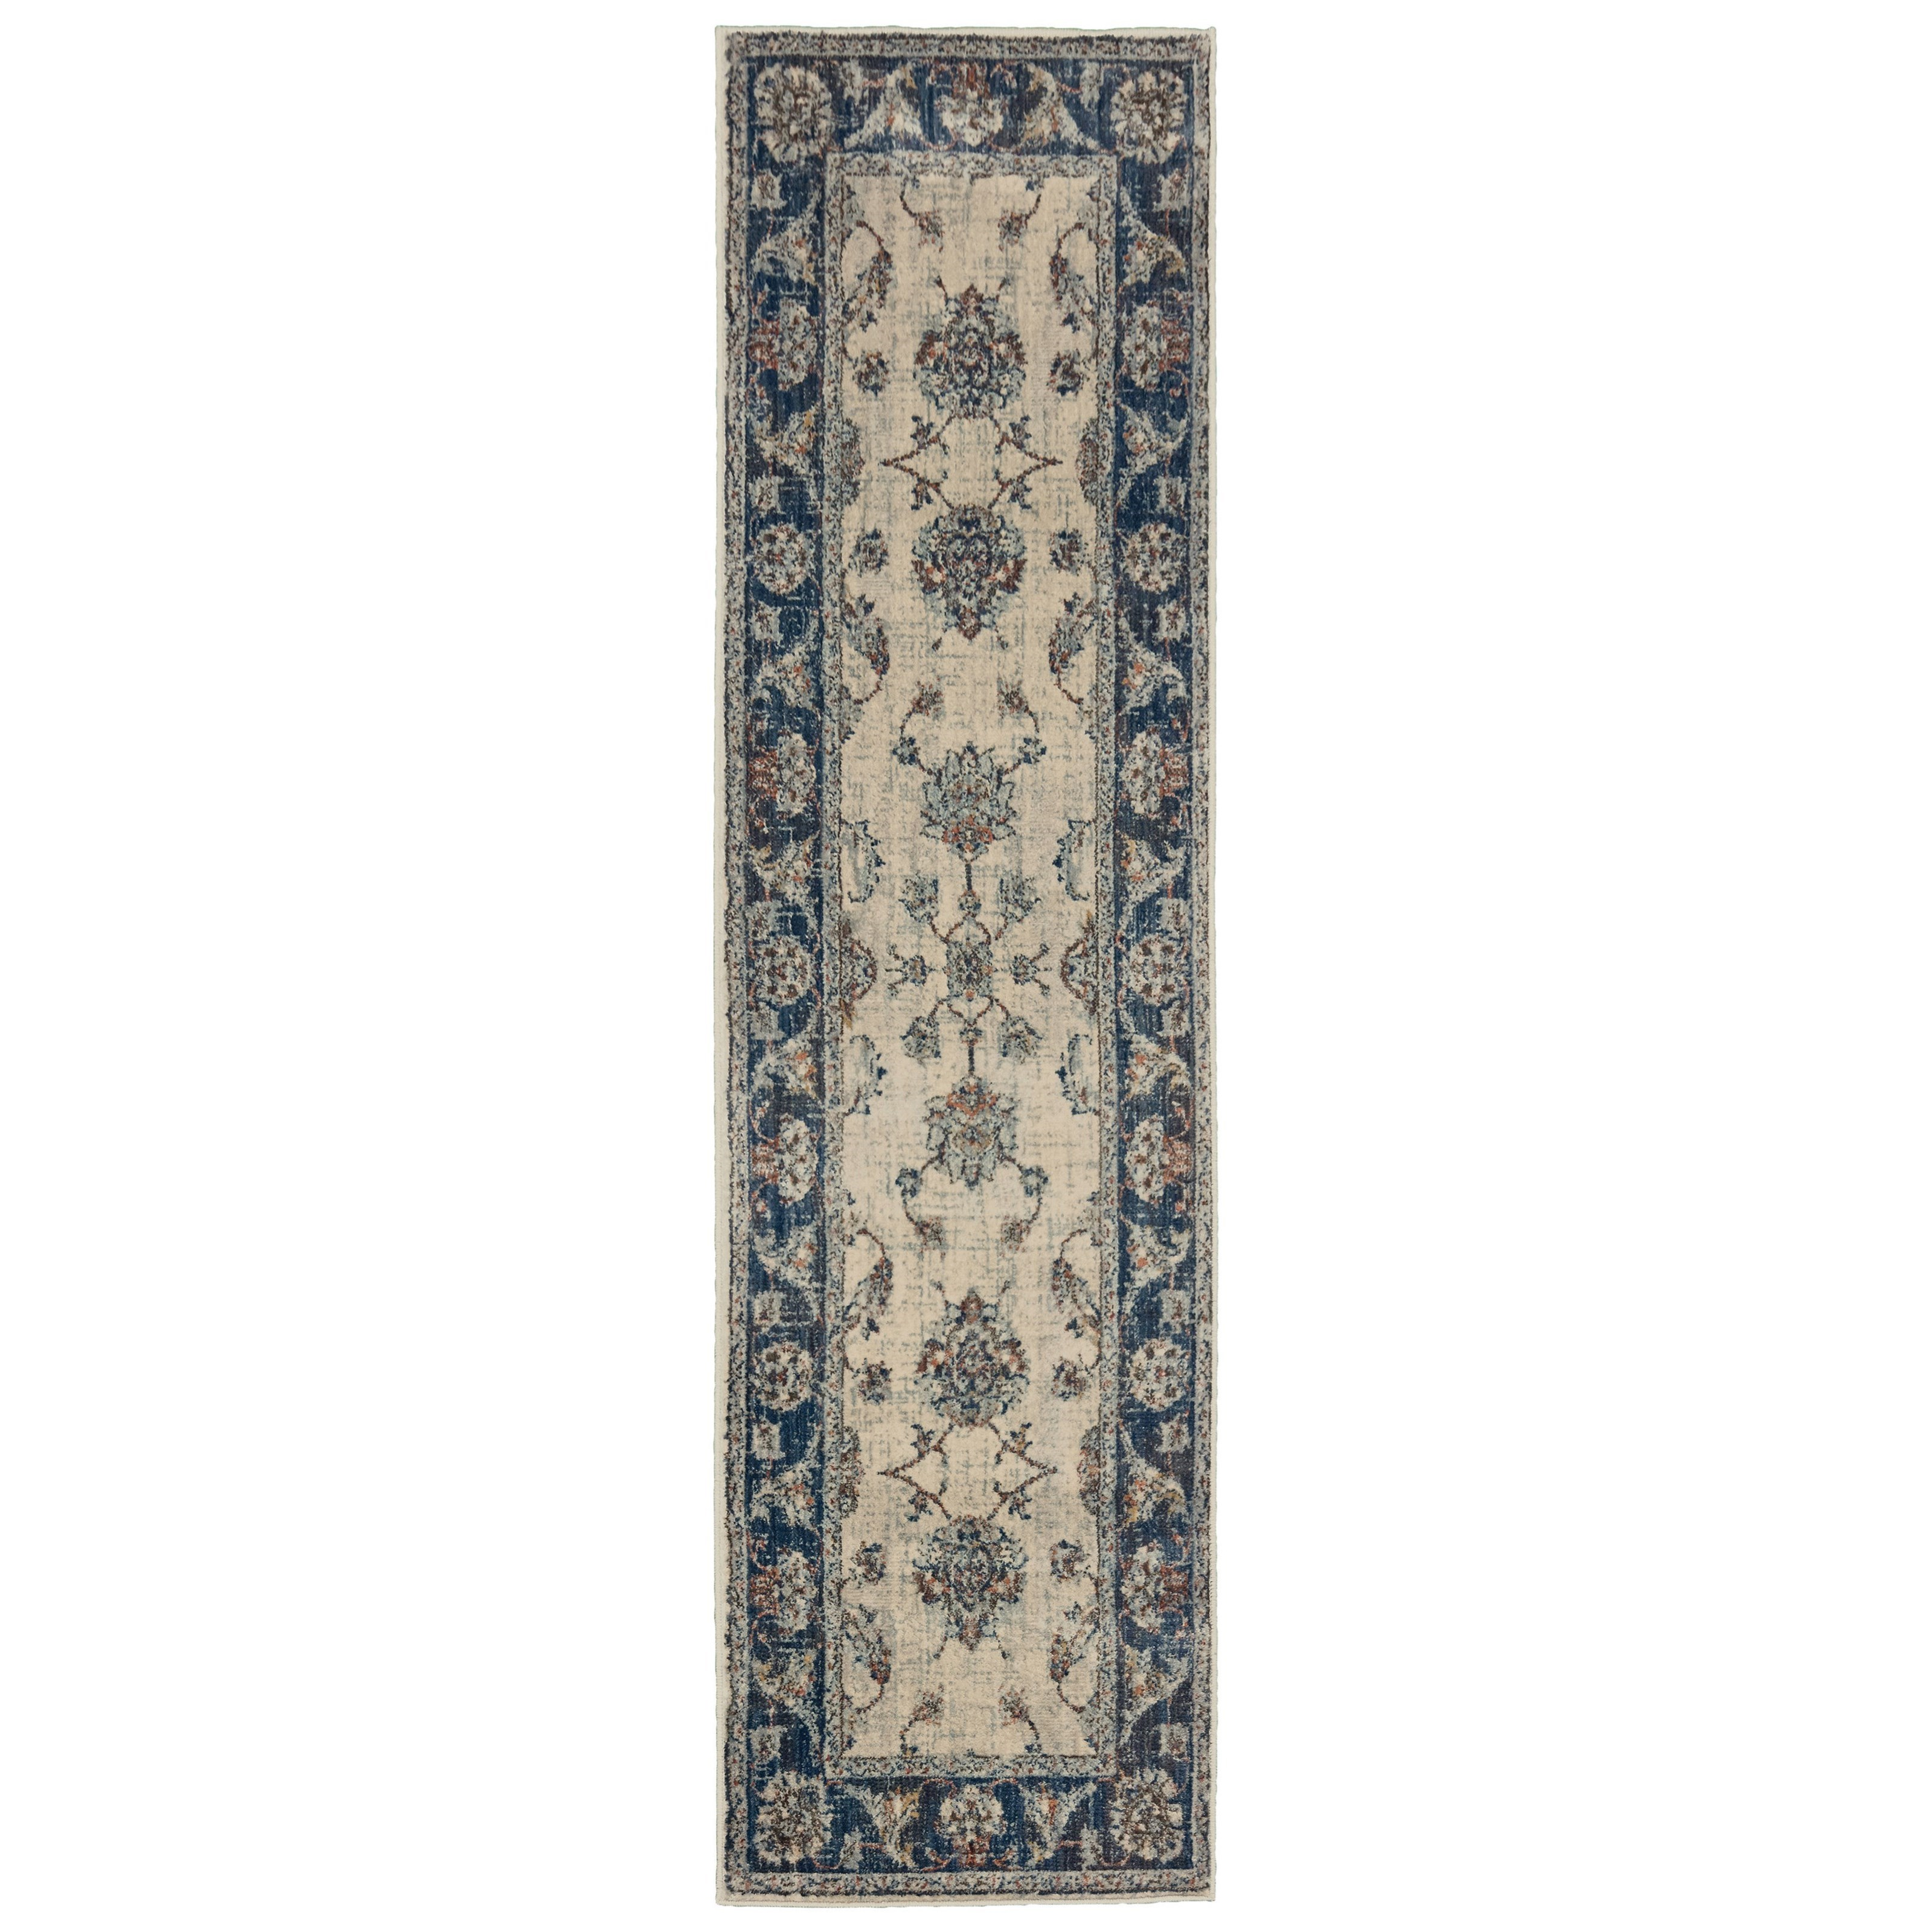 "Pandora 2' 3"" X  7' 6"" Runner Rug by Oriental Weavers at Furniture Superstore - Rochester, MN"